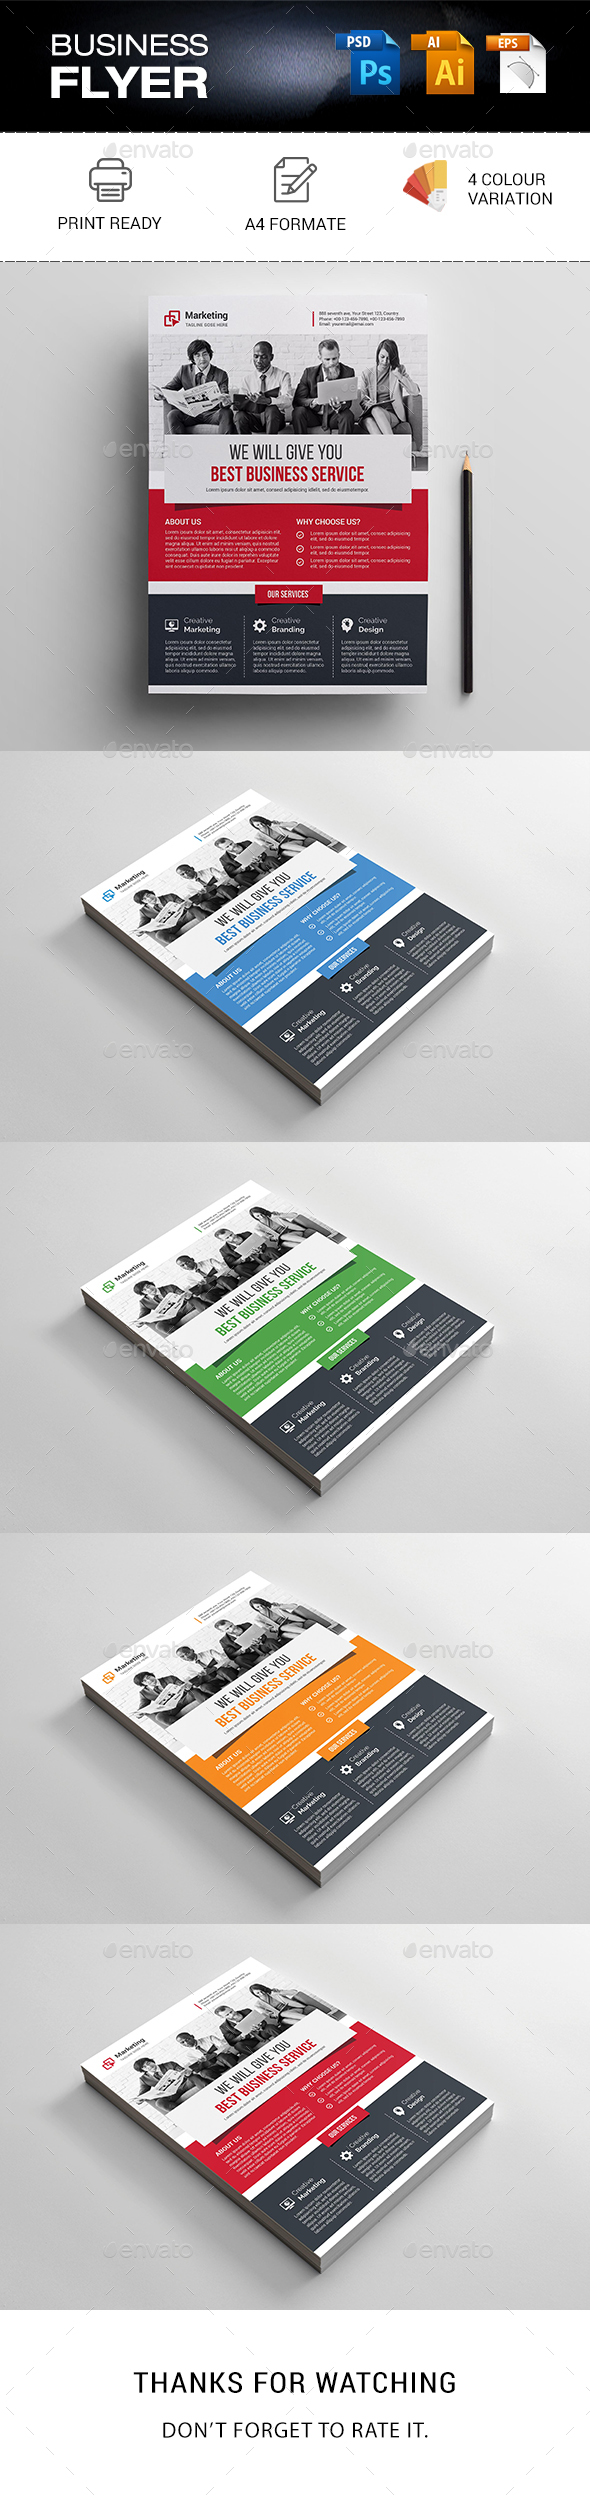 GraphicRiver Business Flyer 21189124